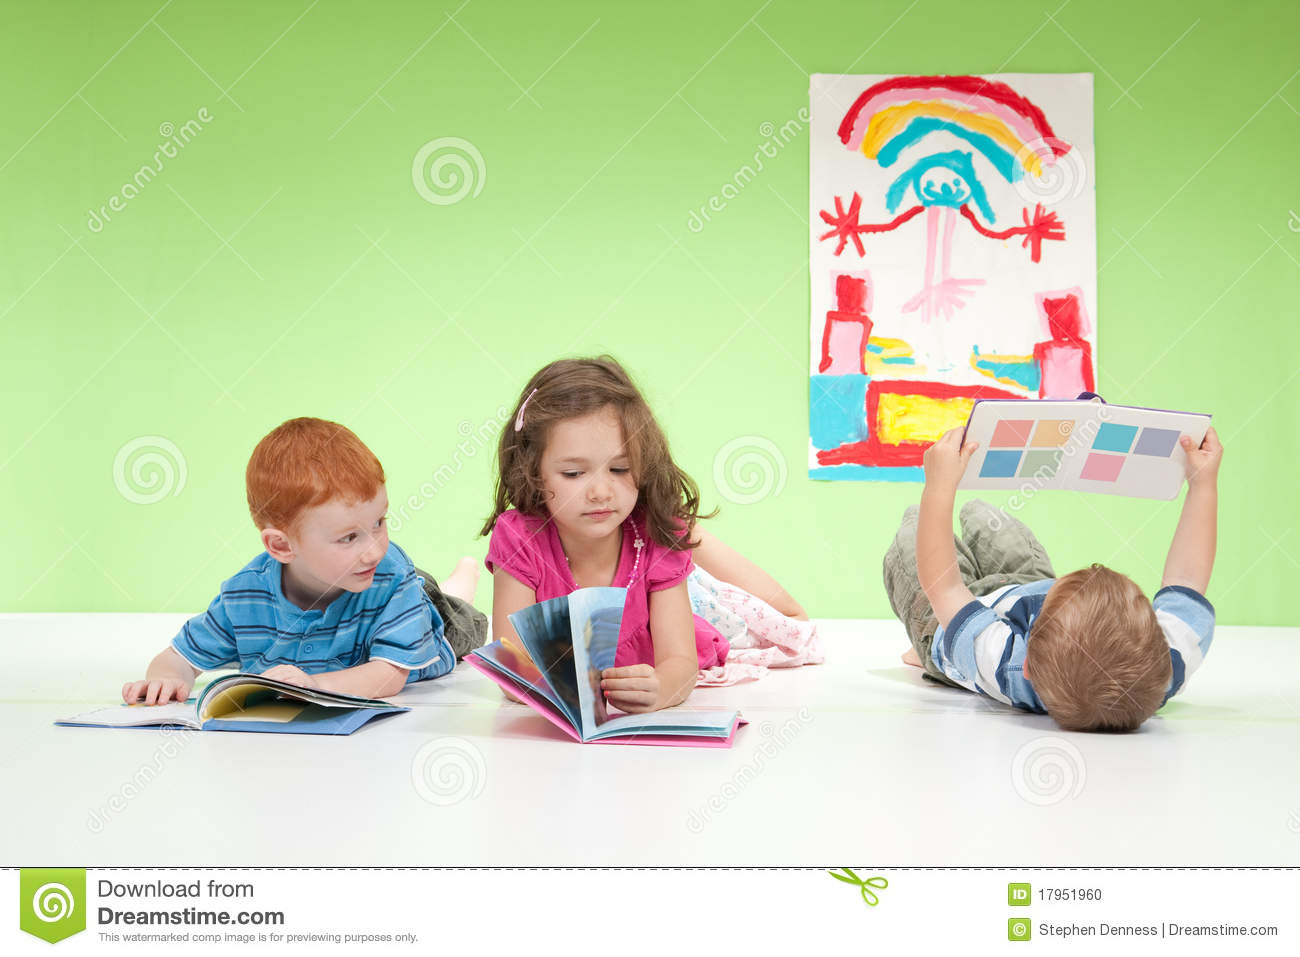 Why read to babies and young children?